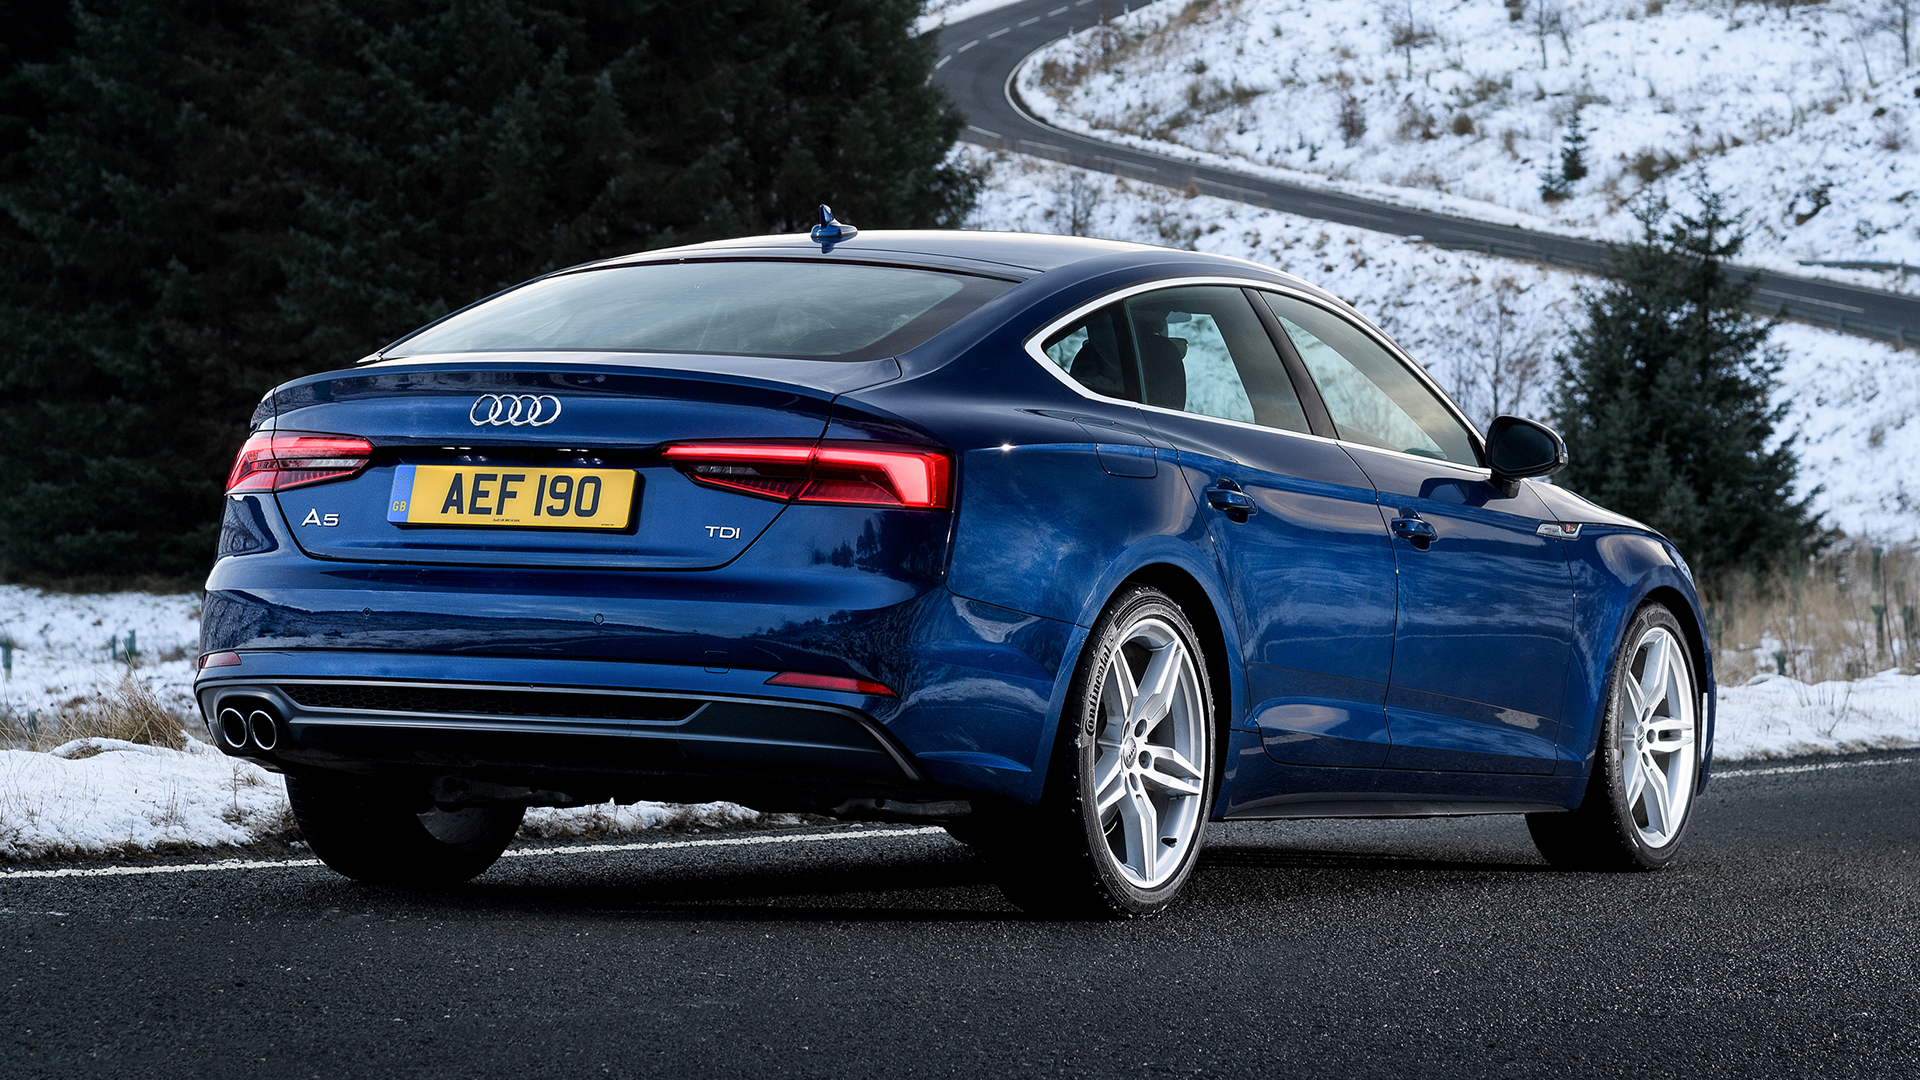 New & used Audi A9 cars for sale | Auto Trader | audi a5 coupe used cars for sale